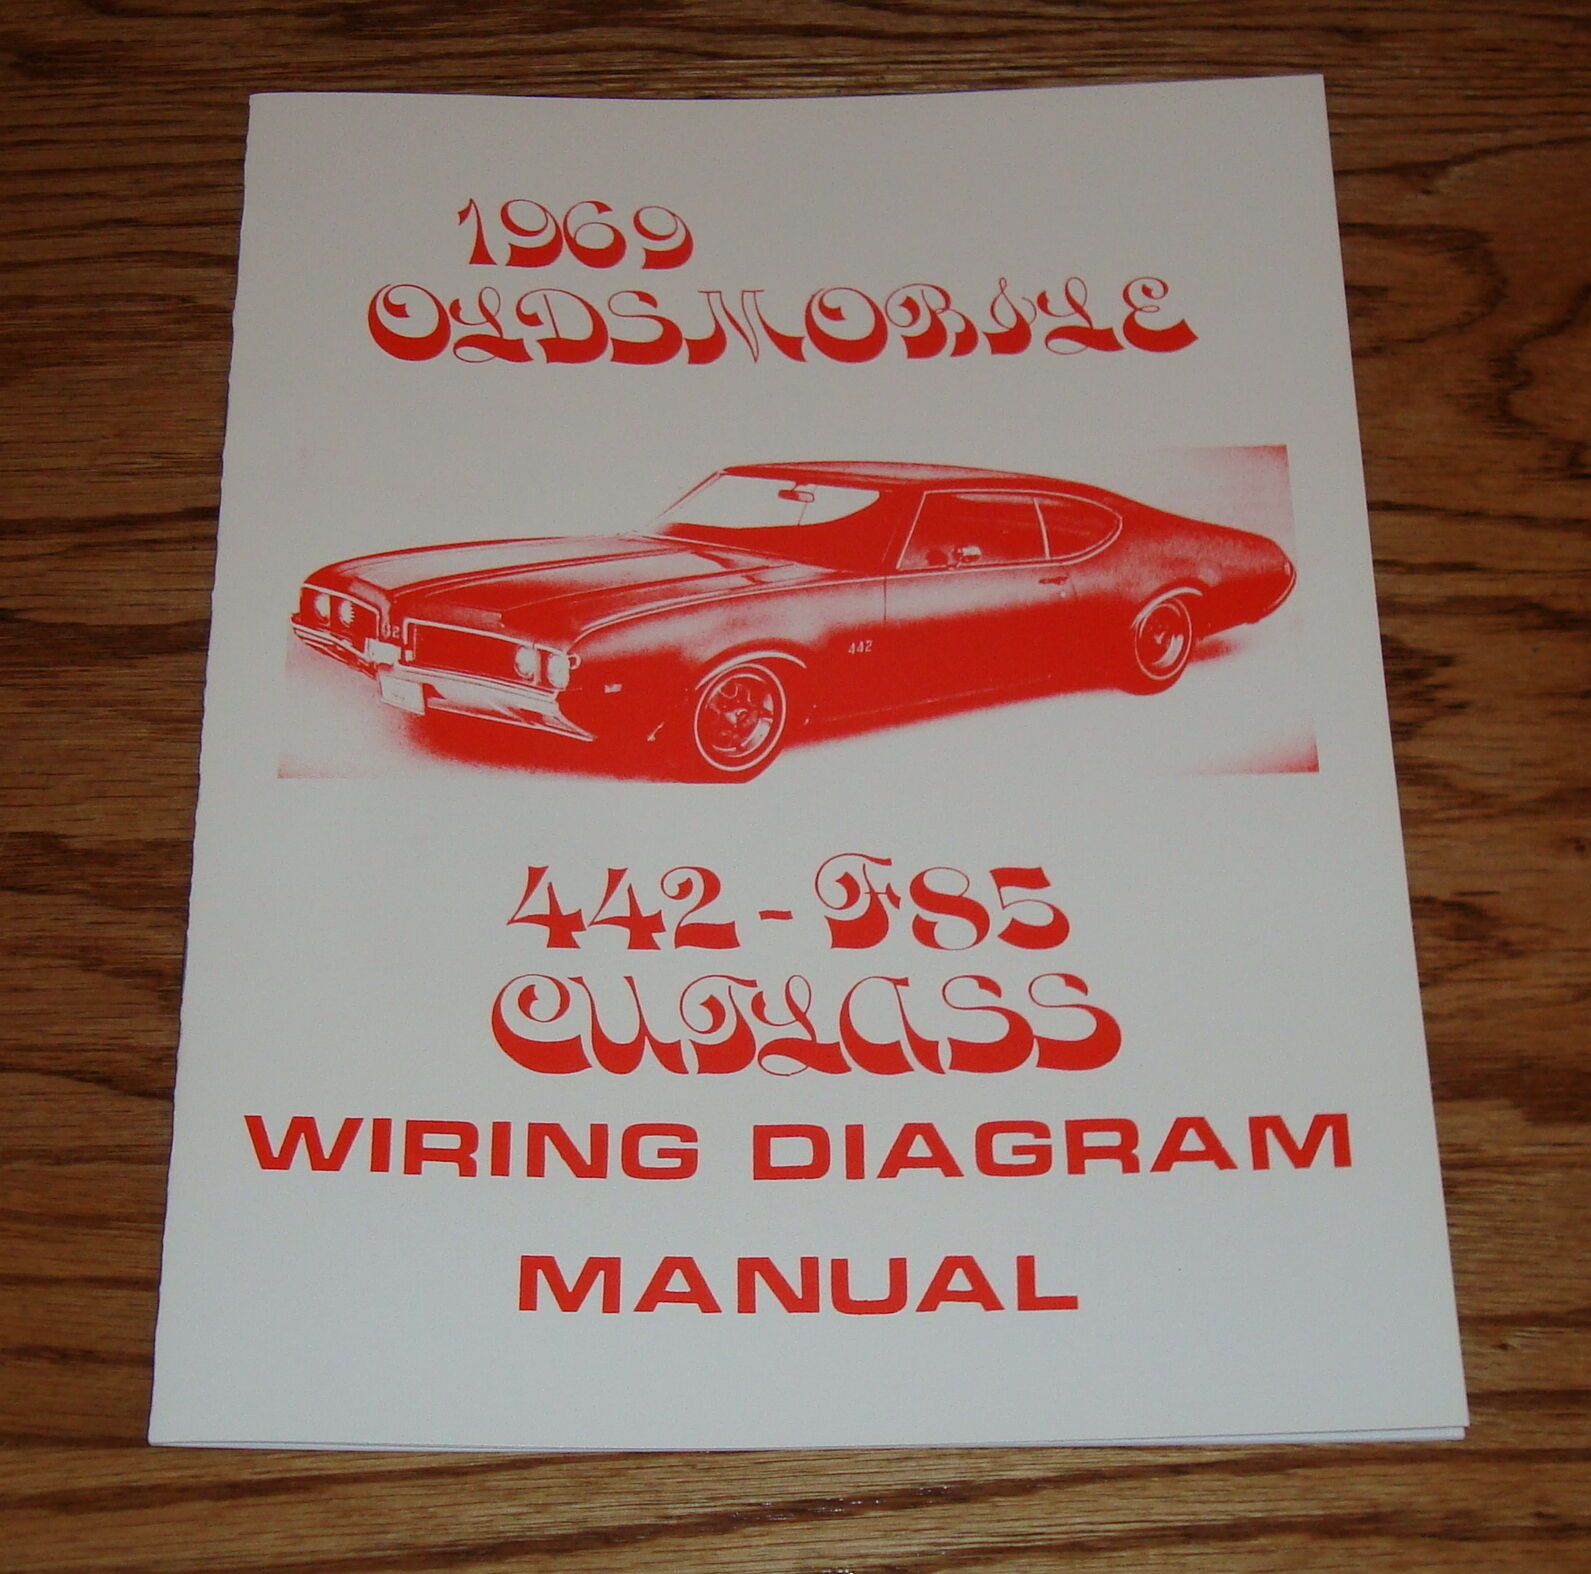 1969 Oldsmobile Cutlass 442 F85 Wiring Diagram Manual 69 686 1998 Engine 1 Of 1only 2 Available